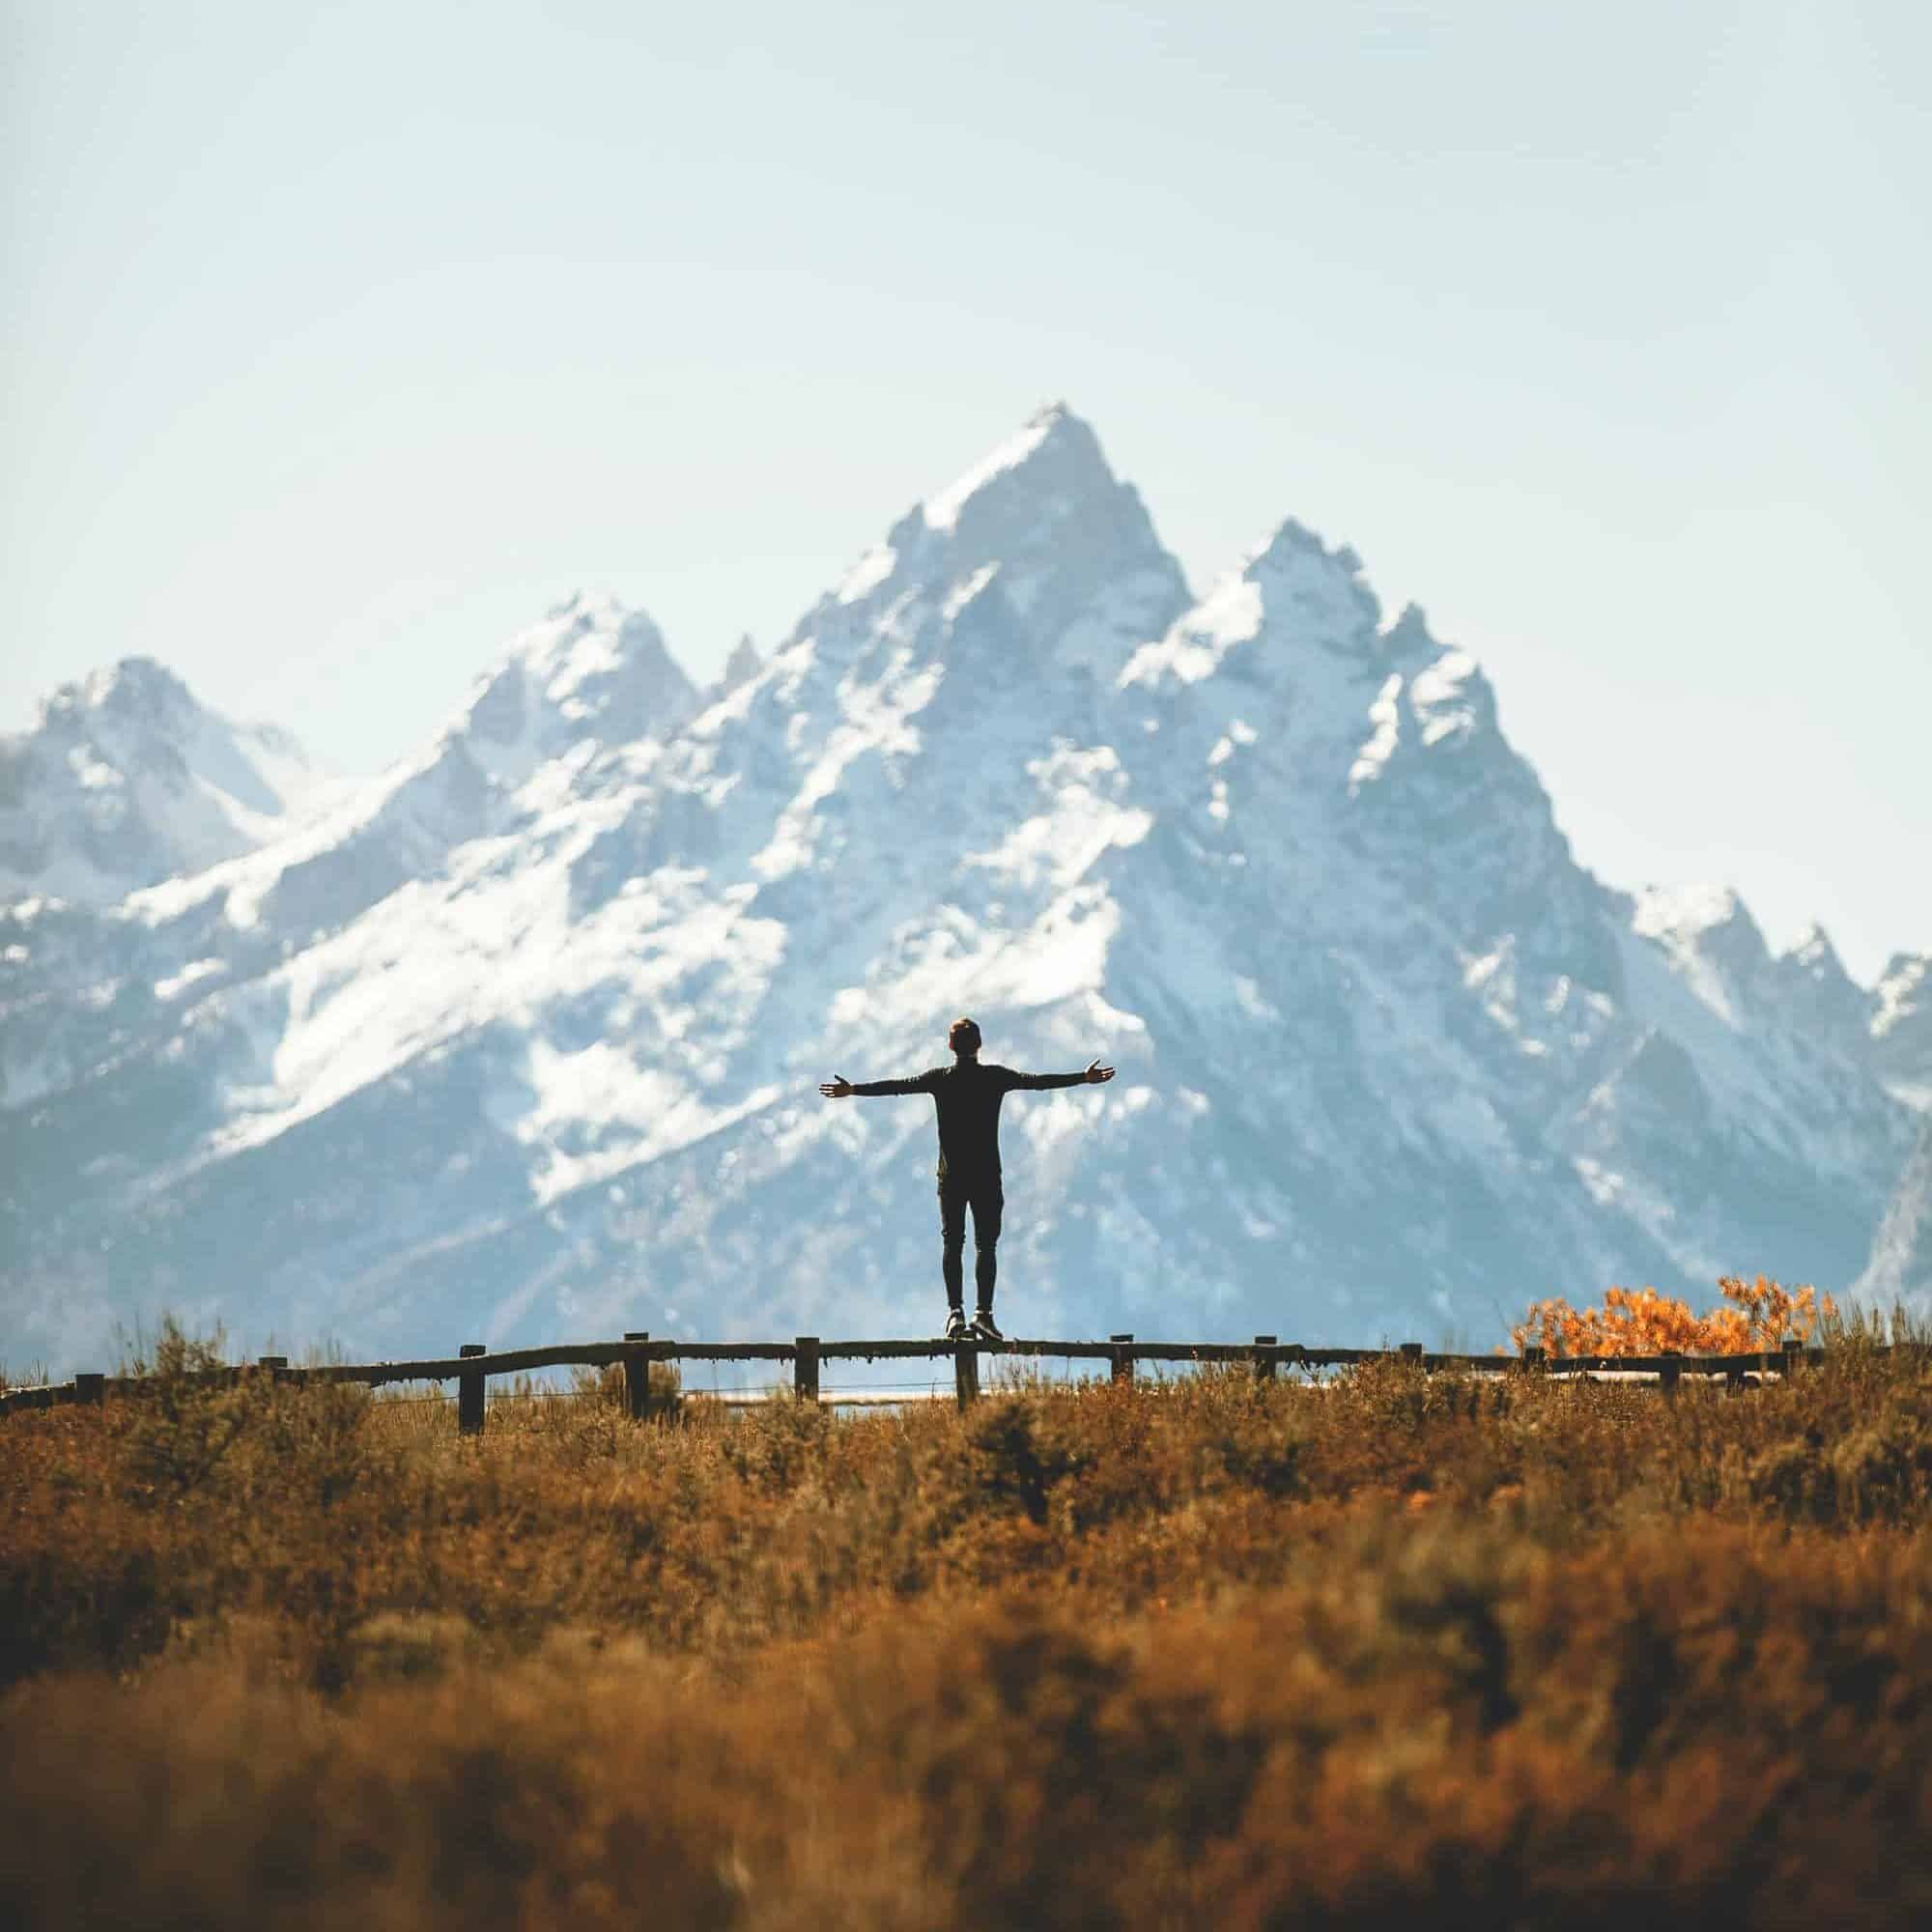 A man looking at a mountain with his arms outstretched.